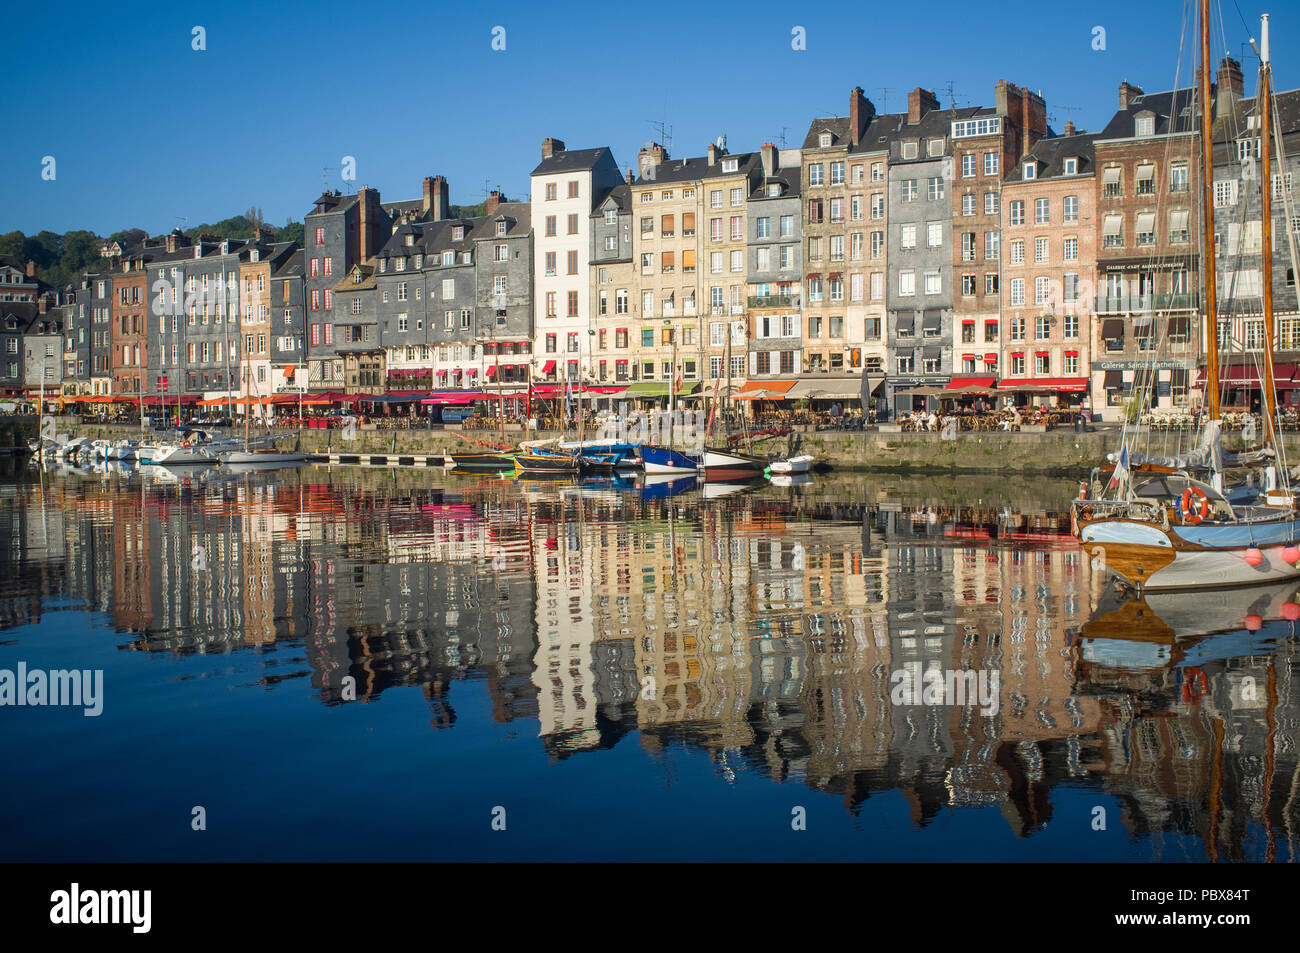 The harbour or Vieux Bassin in Honfleur at dawn, Normandy, France Stock Photo